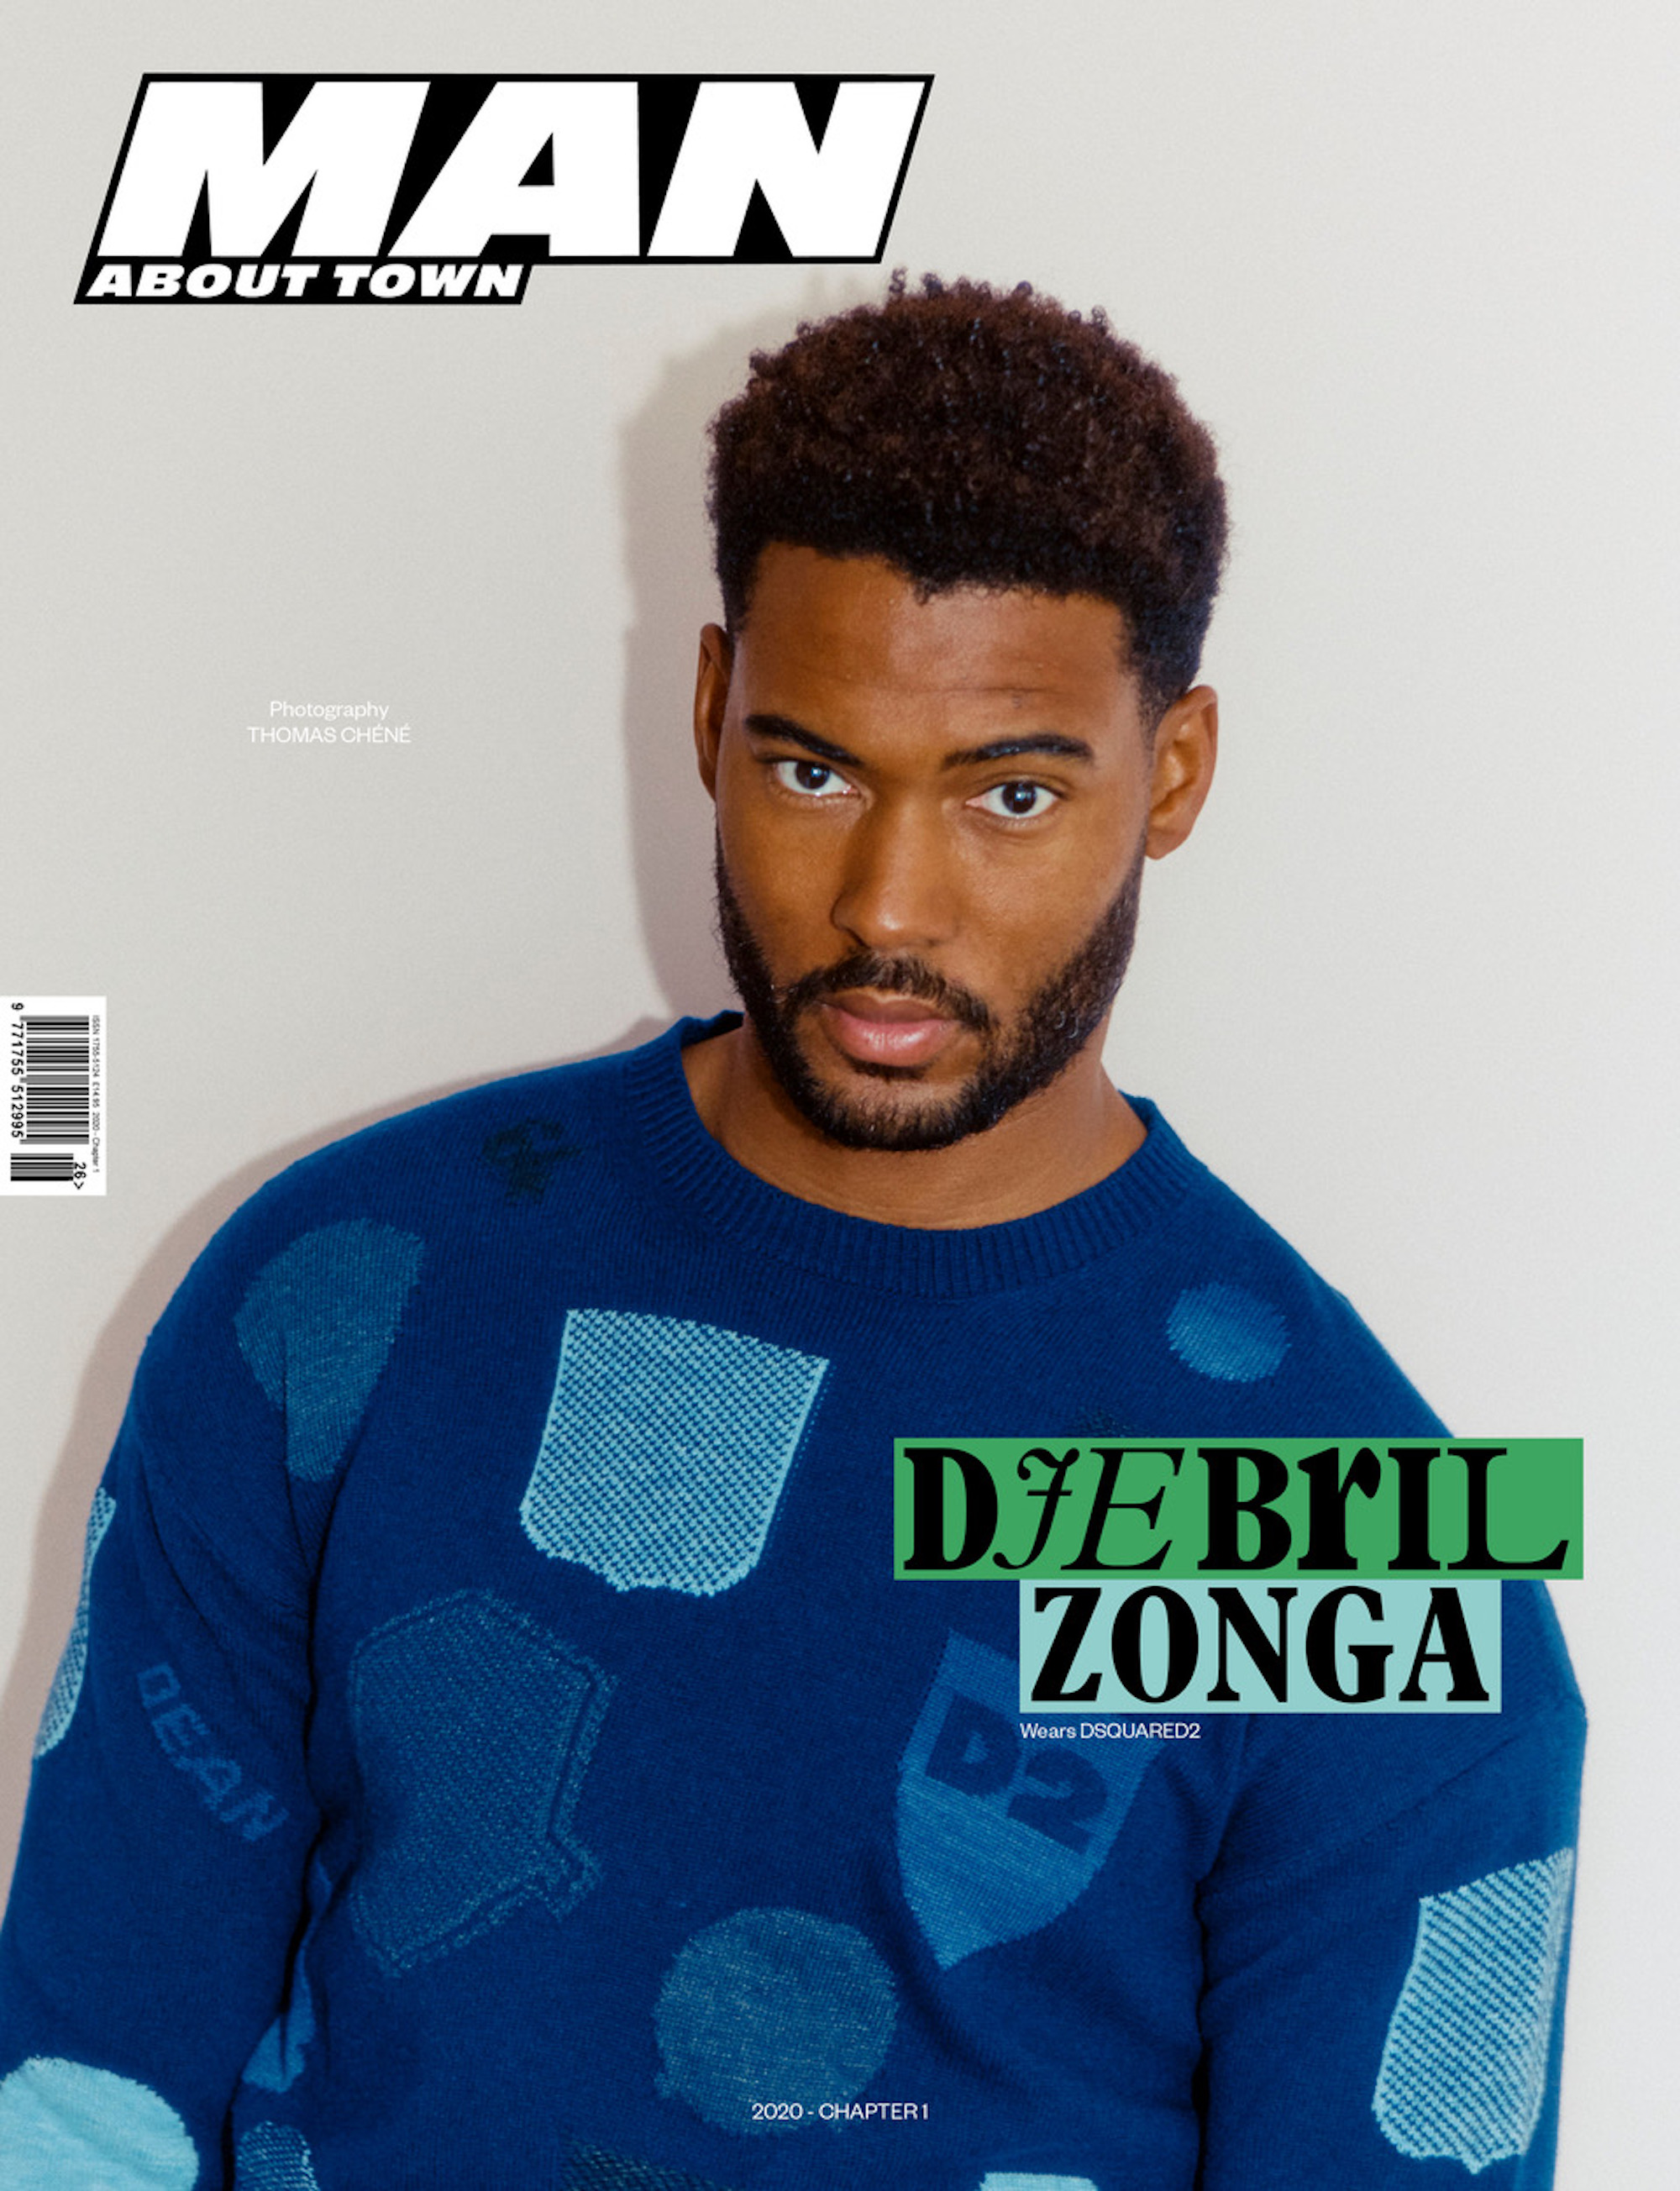 Djebril Zonga wears DSquared2 for the cover of Man About Town: 2020, Chapter I.